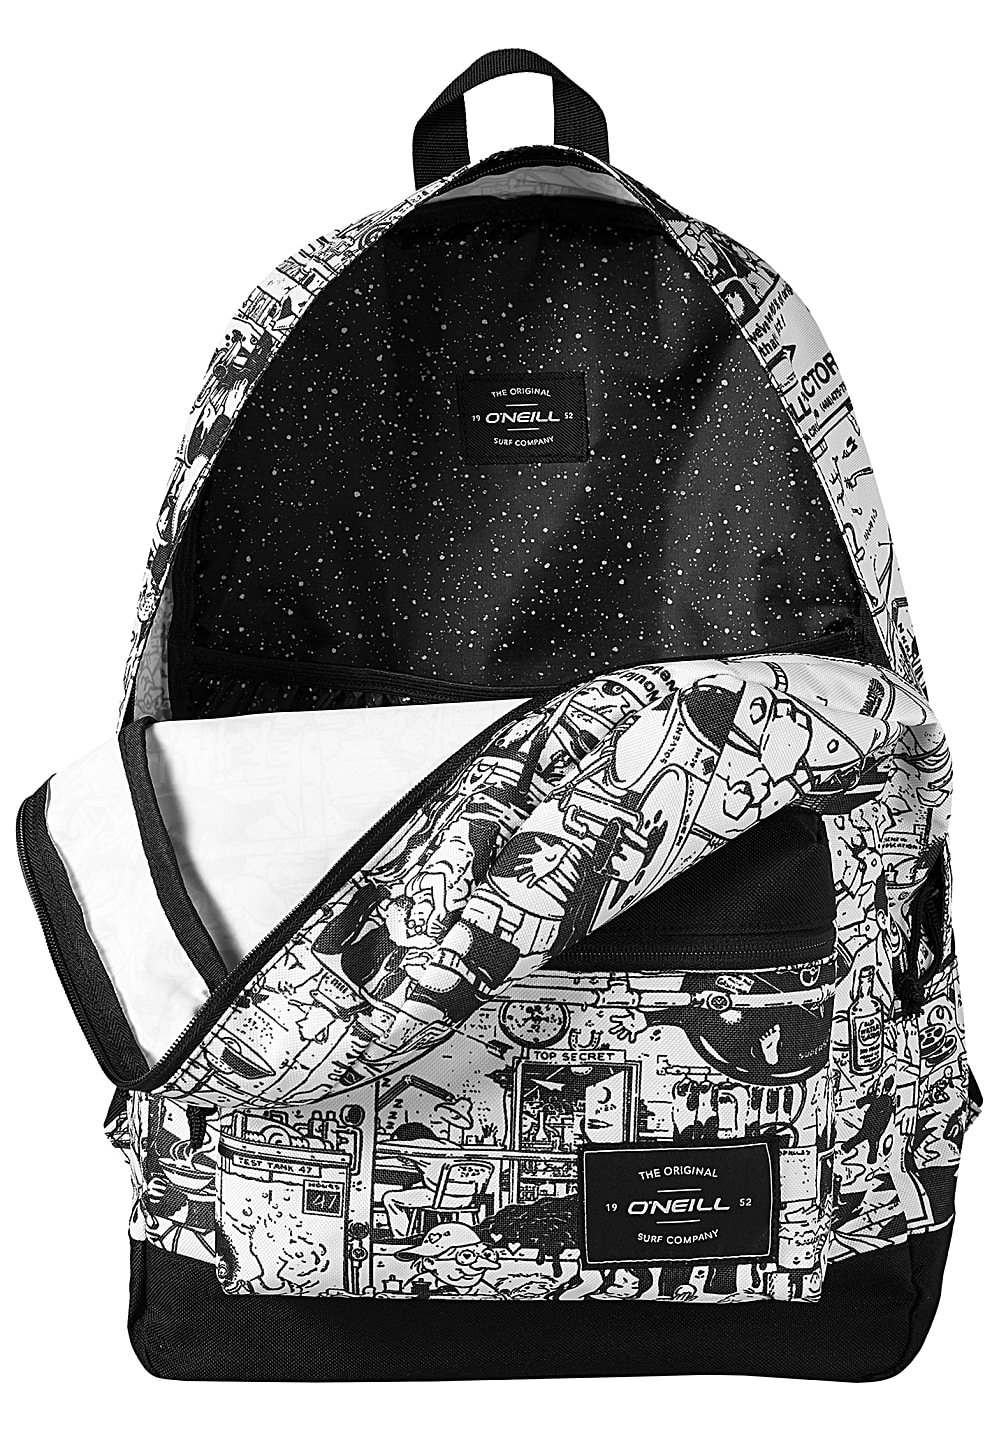 Blanc Sac Planet Fwa7qwpz Graphic Dos O'neill Sports 24l À Coastline 6pfqgPwx6